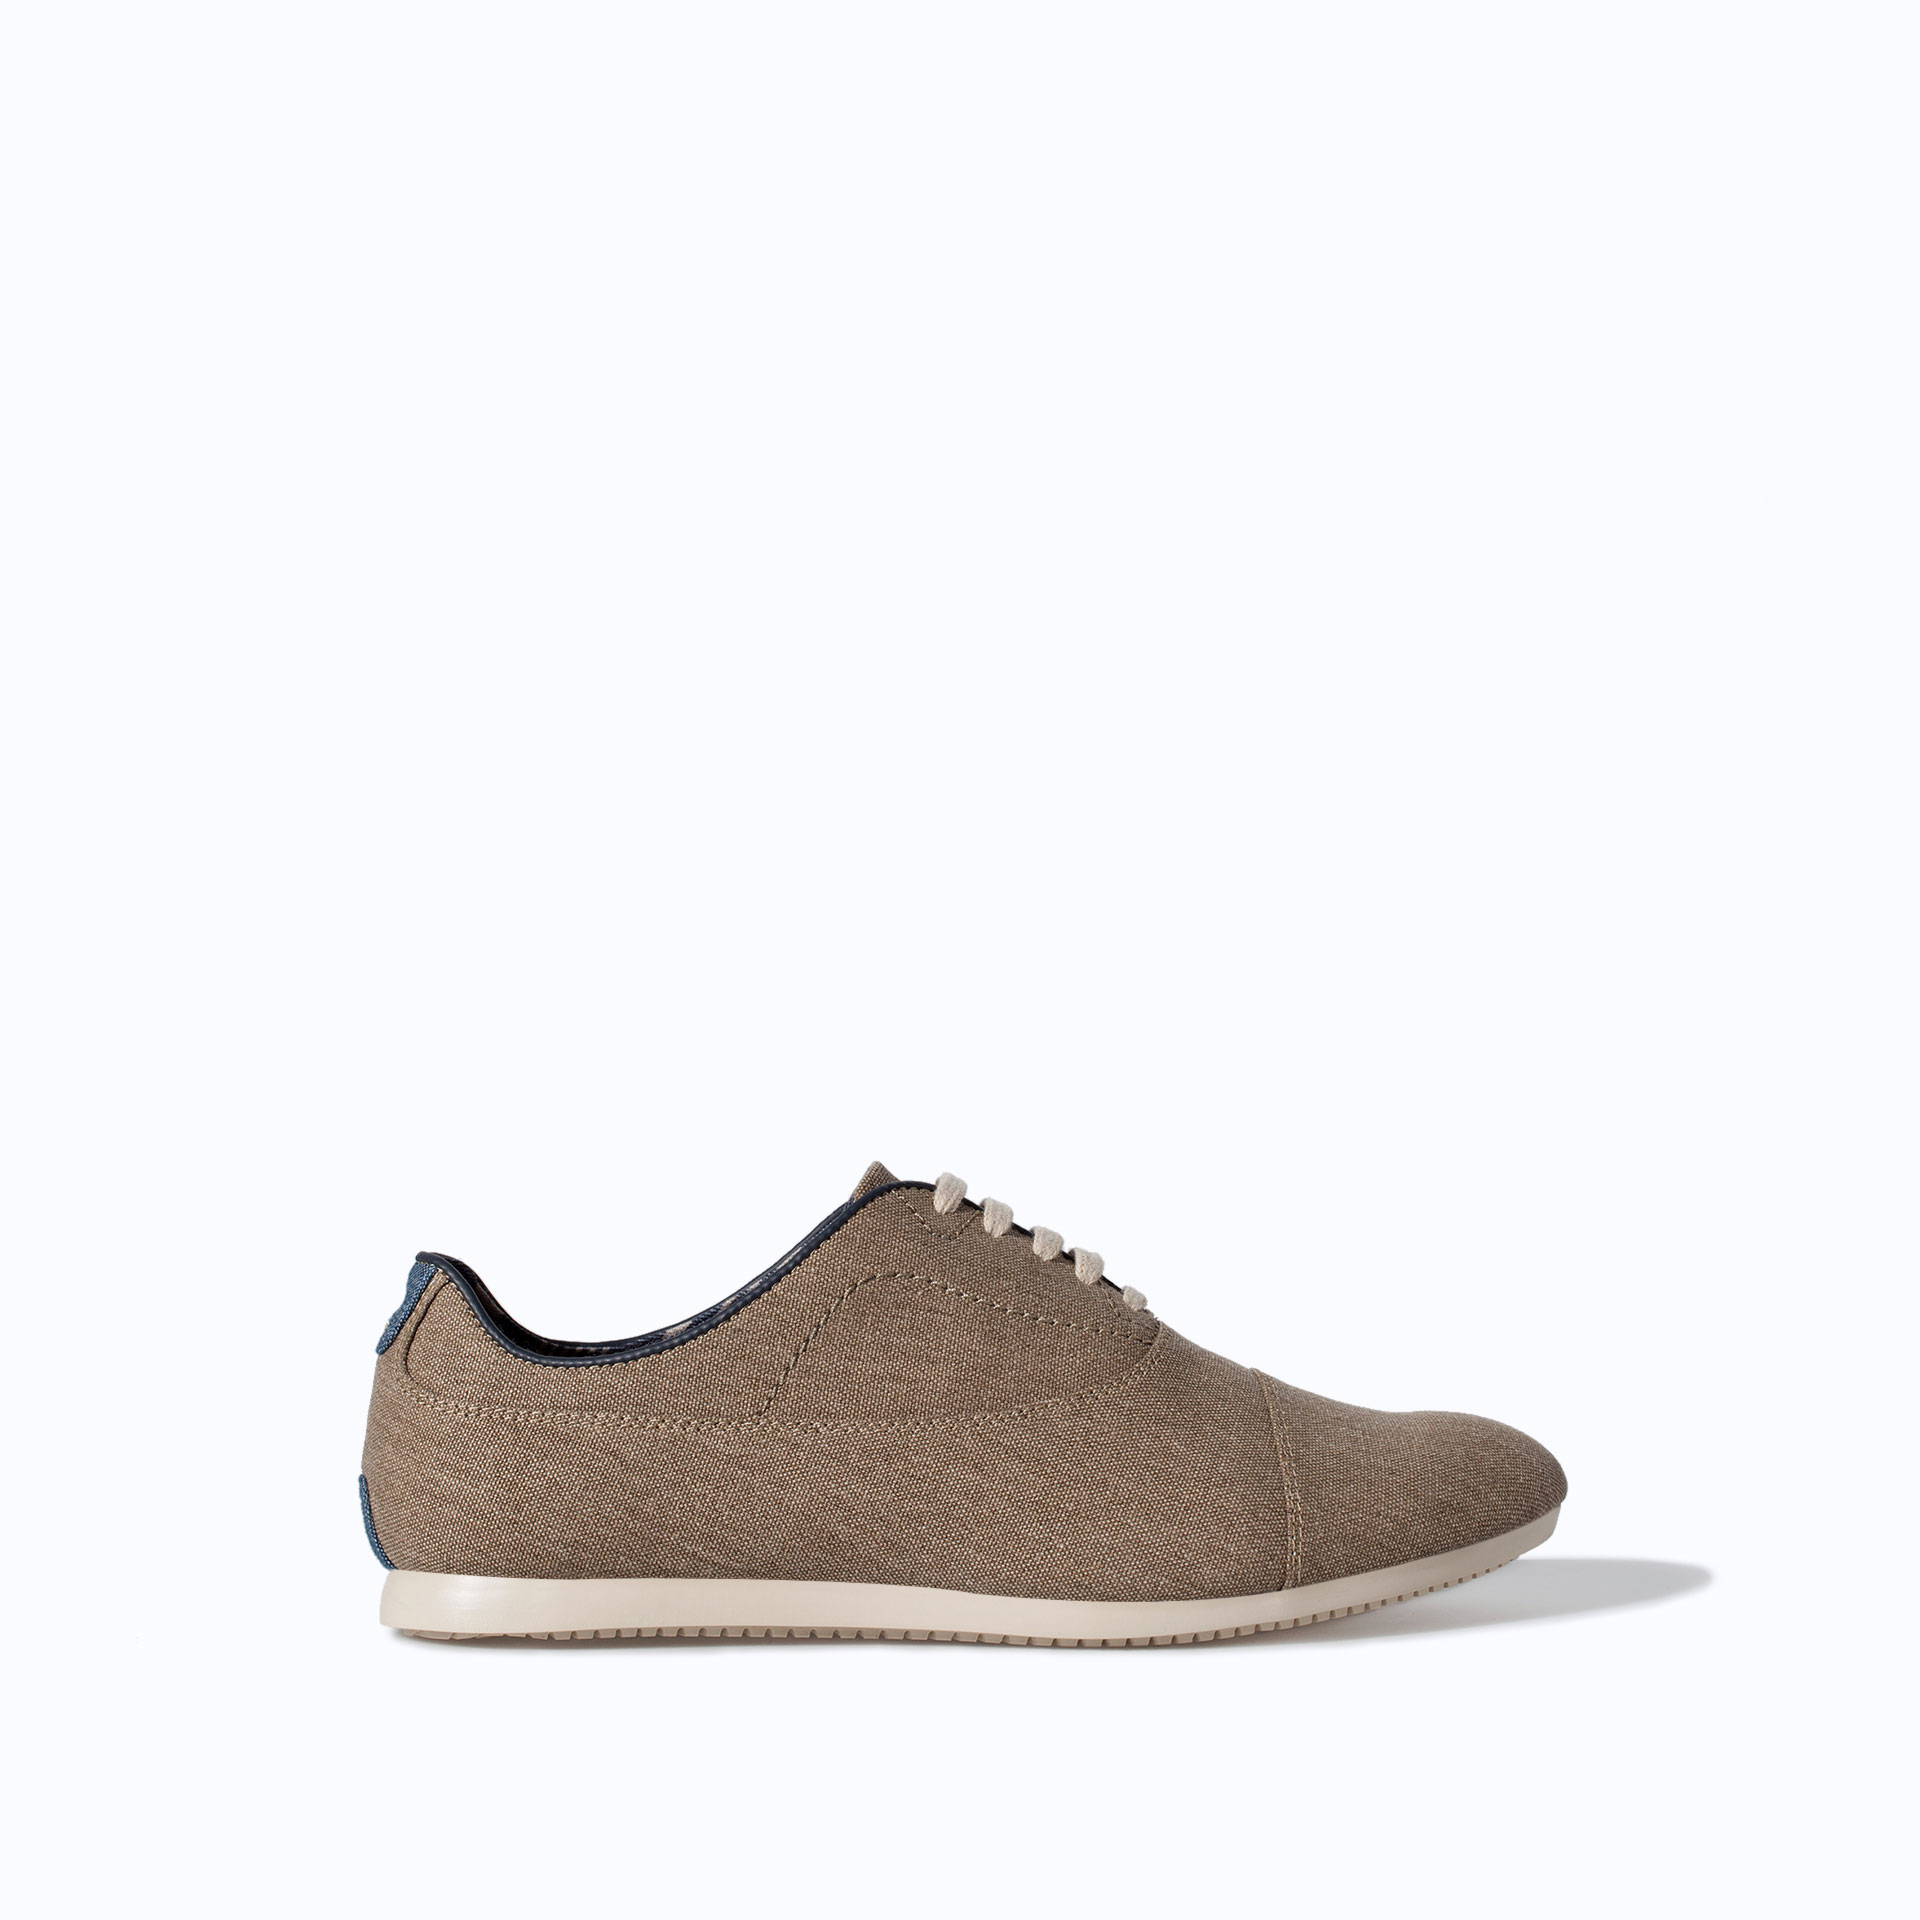 zara canvas oxford shoe in beige for sand lyst